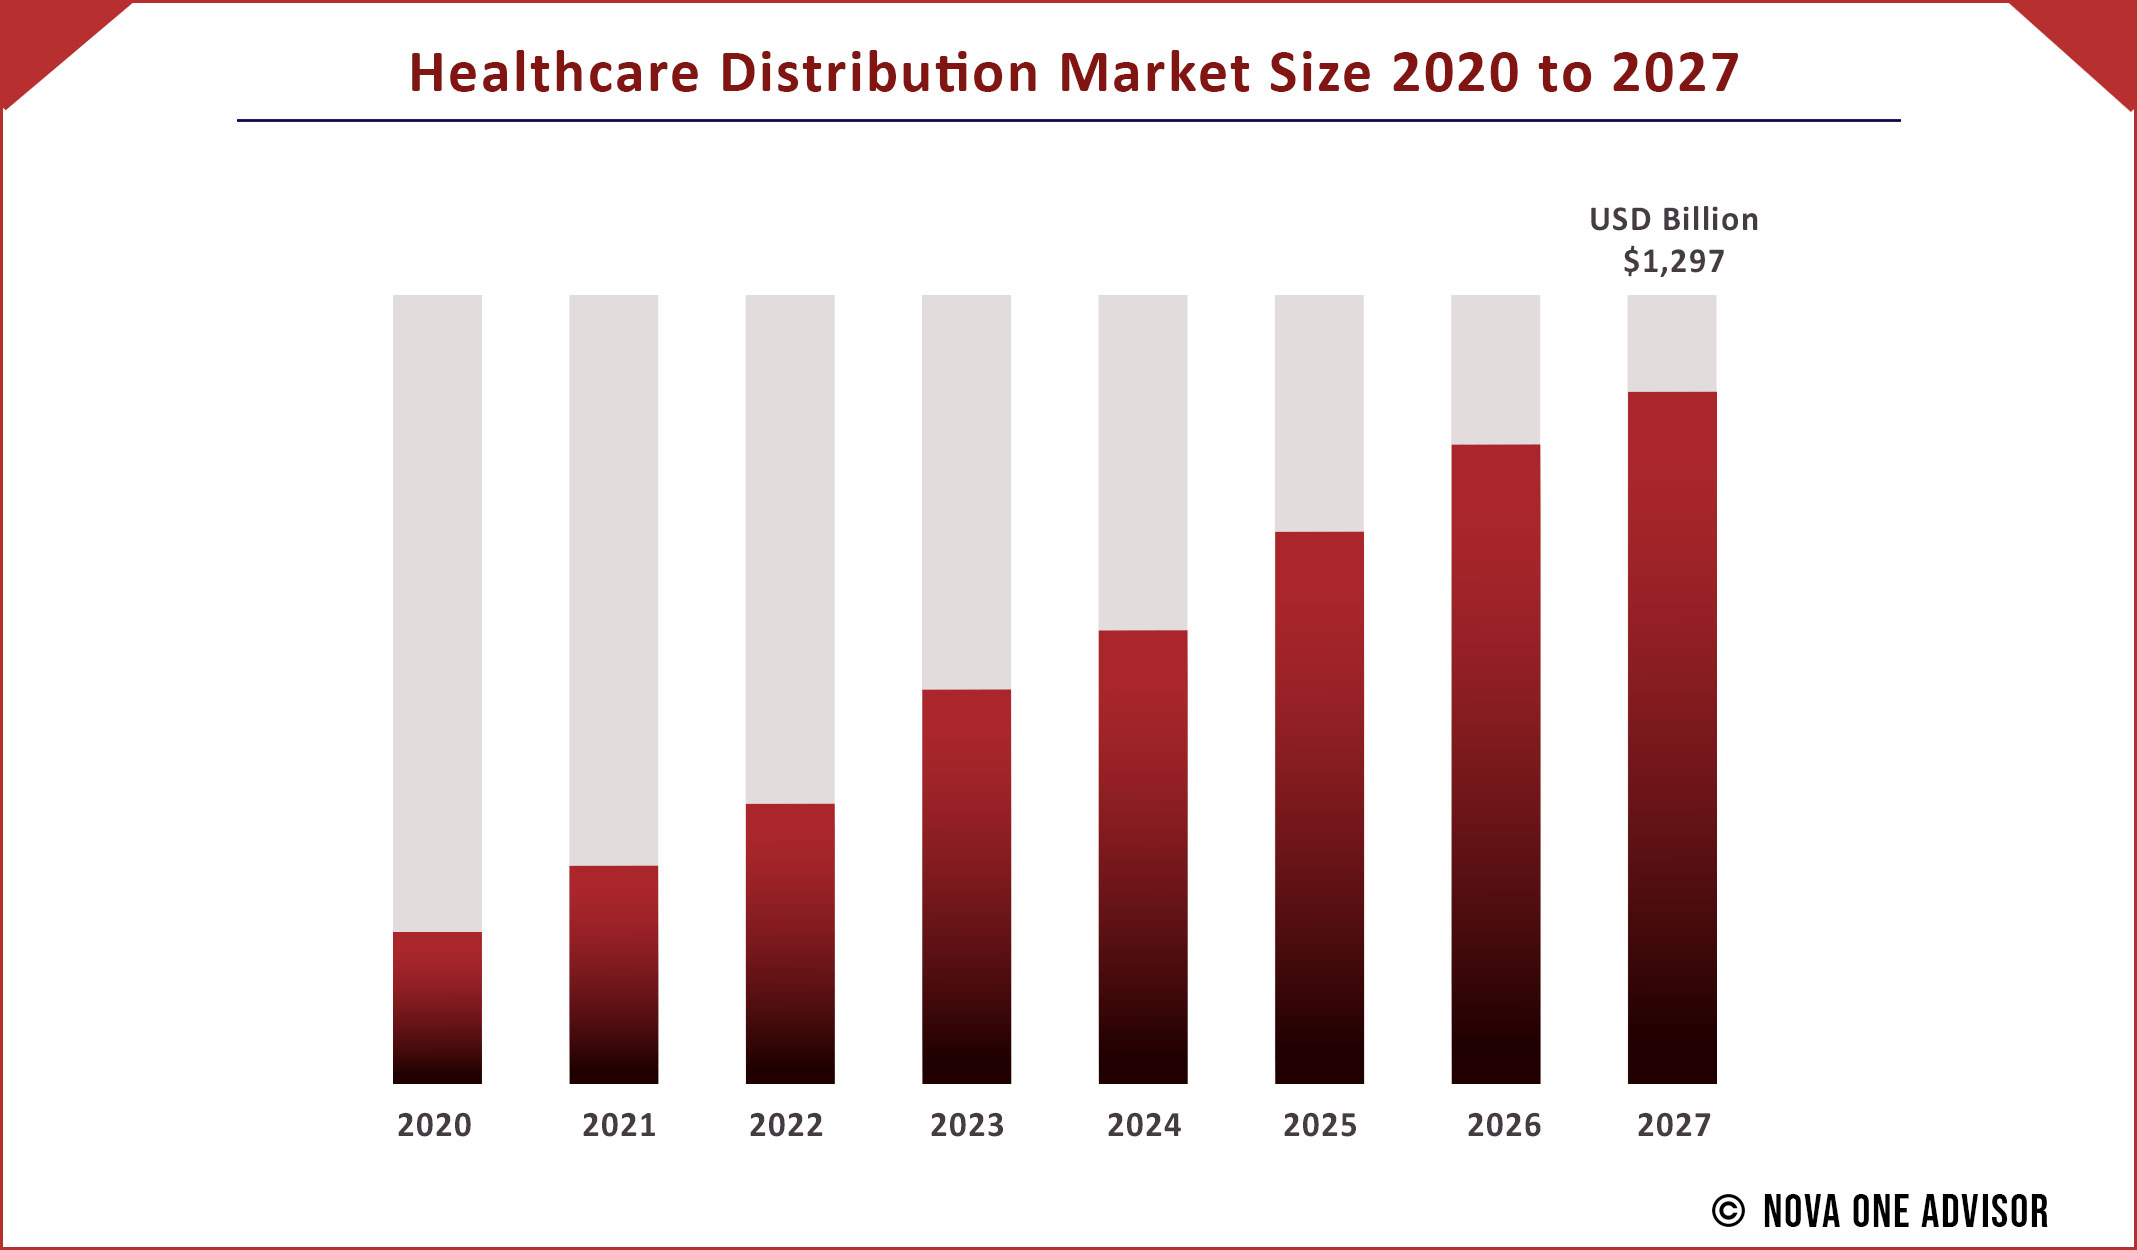 Healthcare Distribution Market Size 2020 to 2027